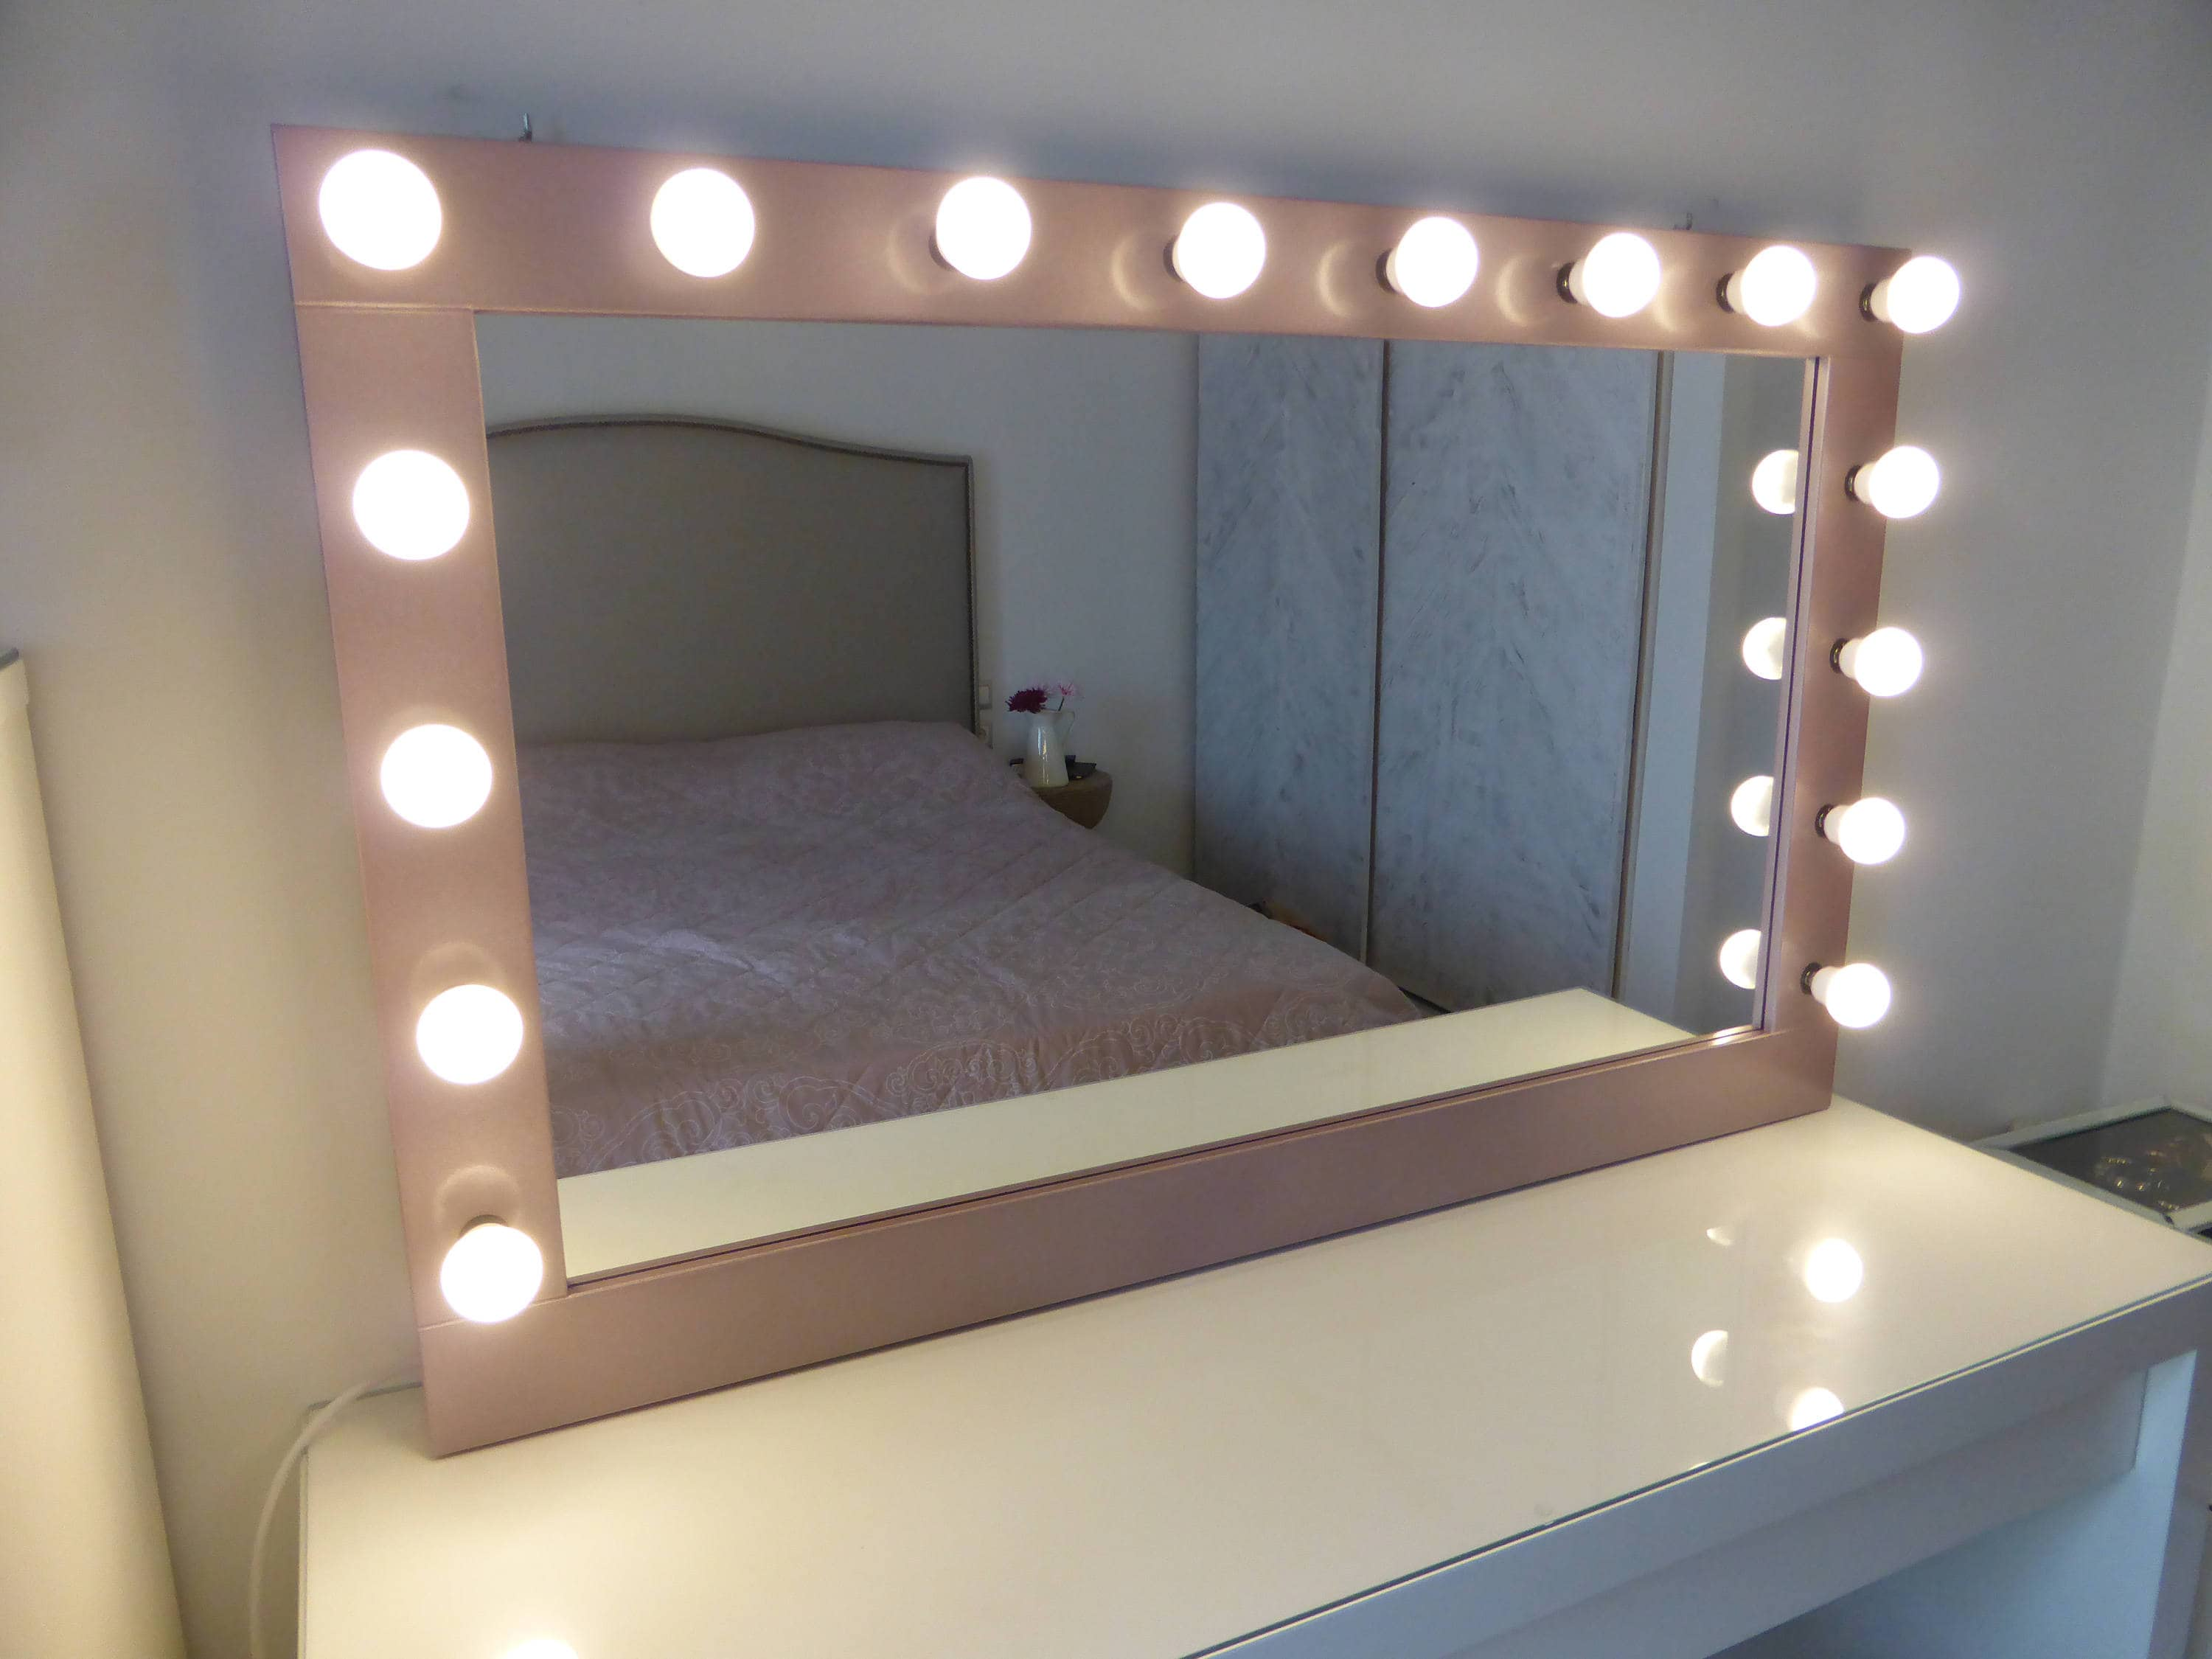 Hollywood Mirror Lights Ikea Xl Hollywood Mirror 43 39 39 X 27 39 39 Rose Gold